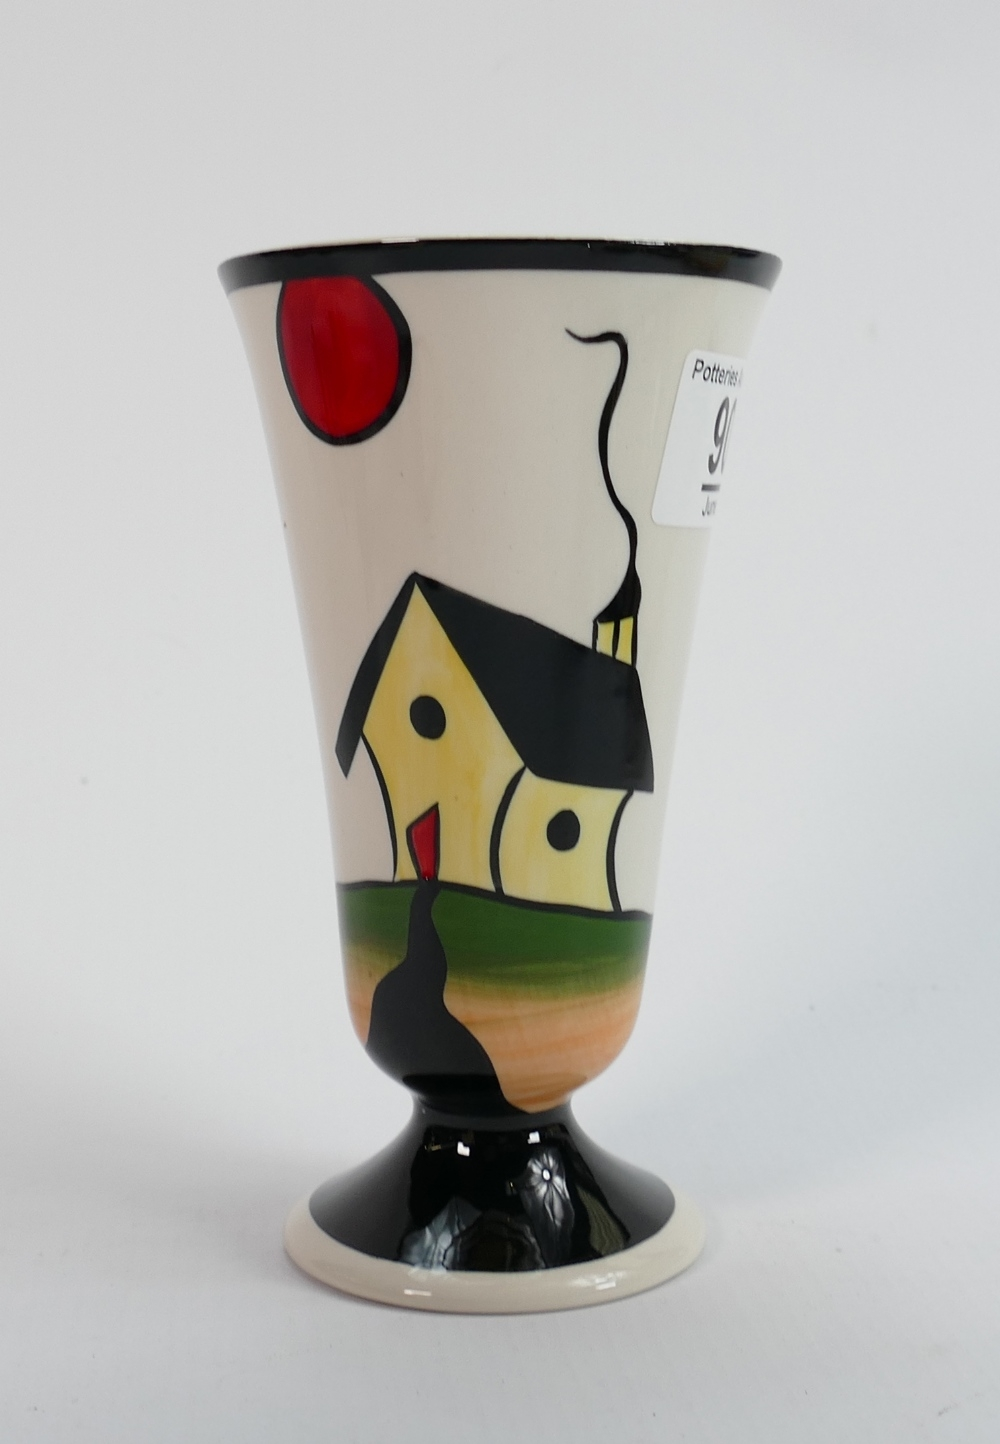 Lorna Bailey vase 1/1 limited edition of one: 14.5 cm. - Image 2 of 2